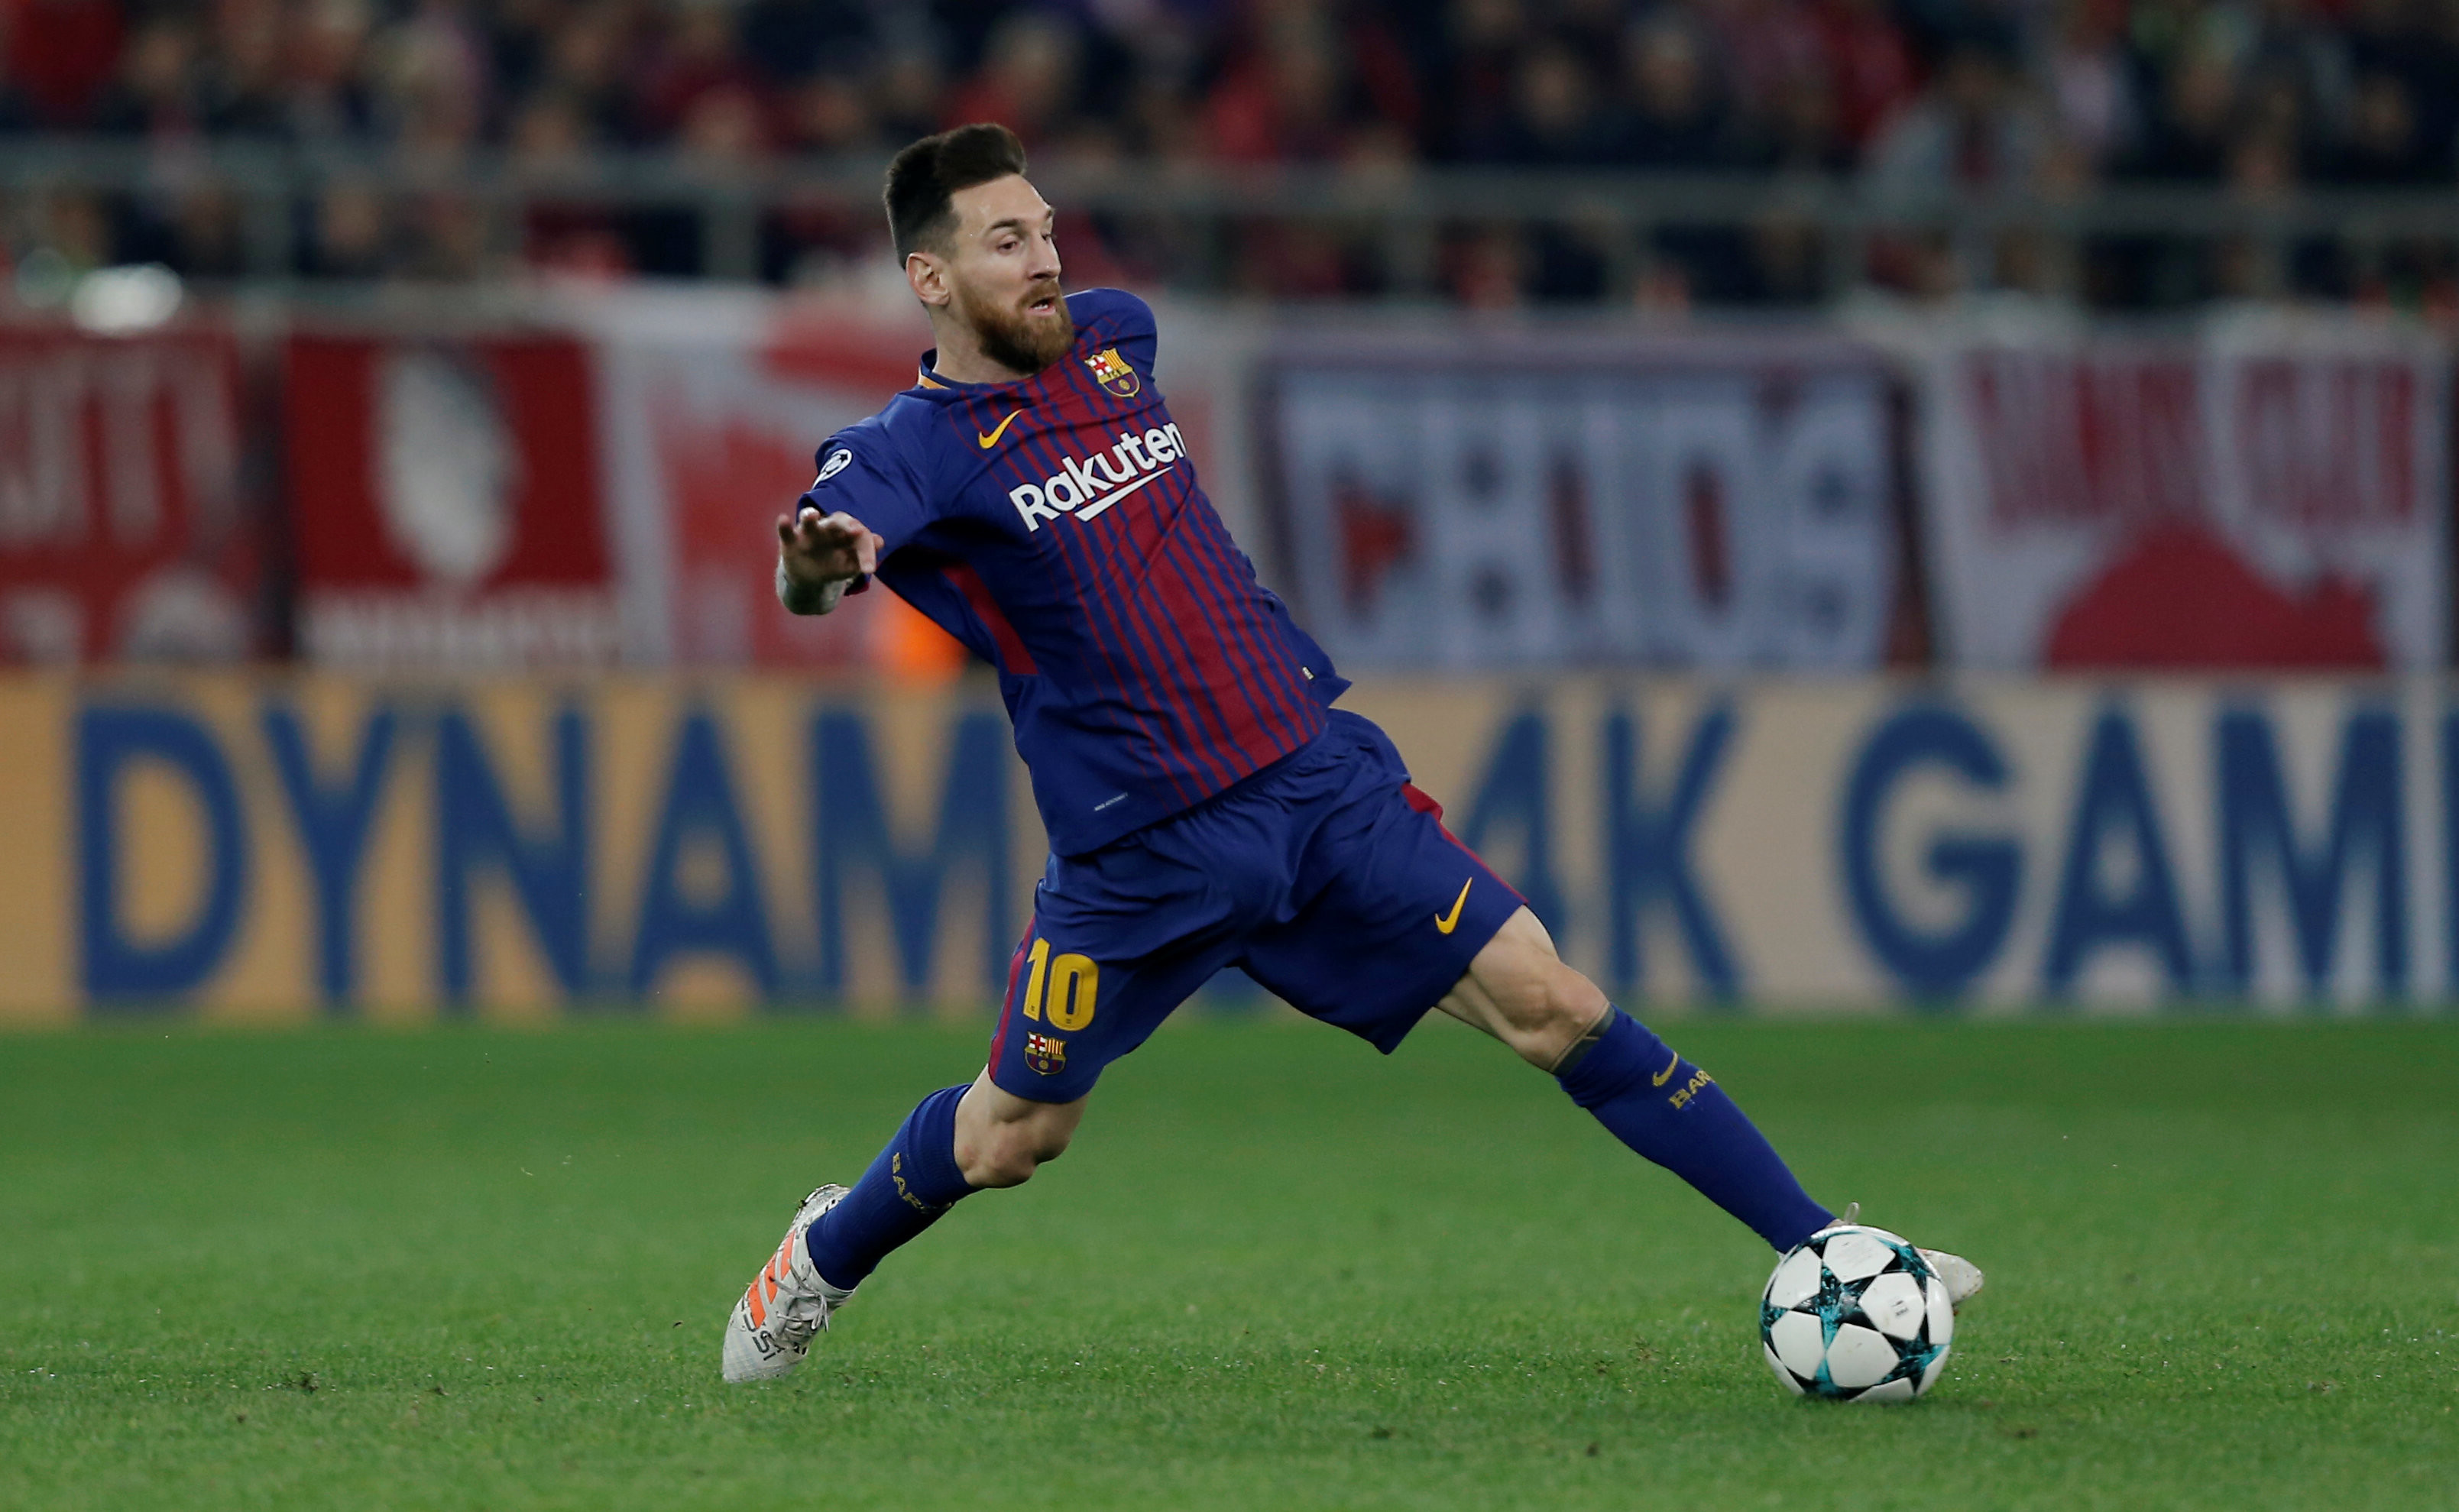 Lionel Messi 2018 Wallpapers 80 images 3218x1979